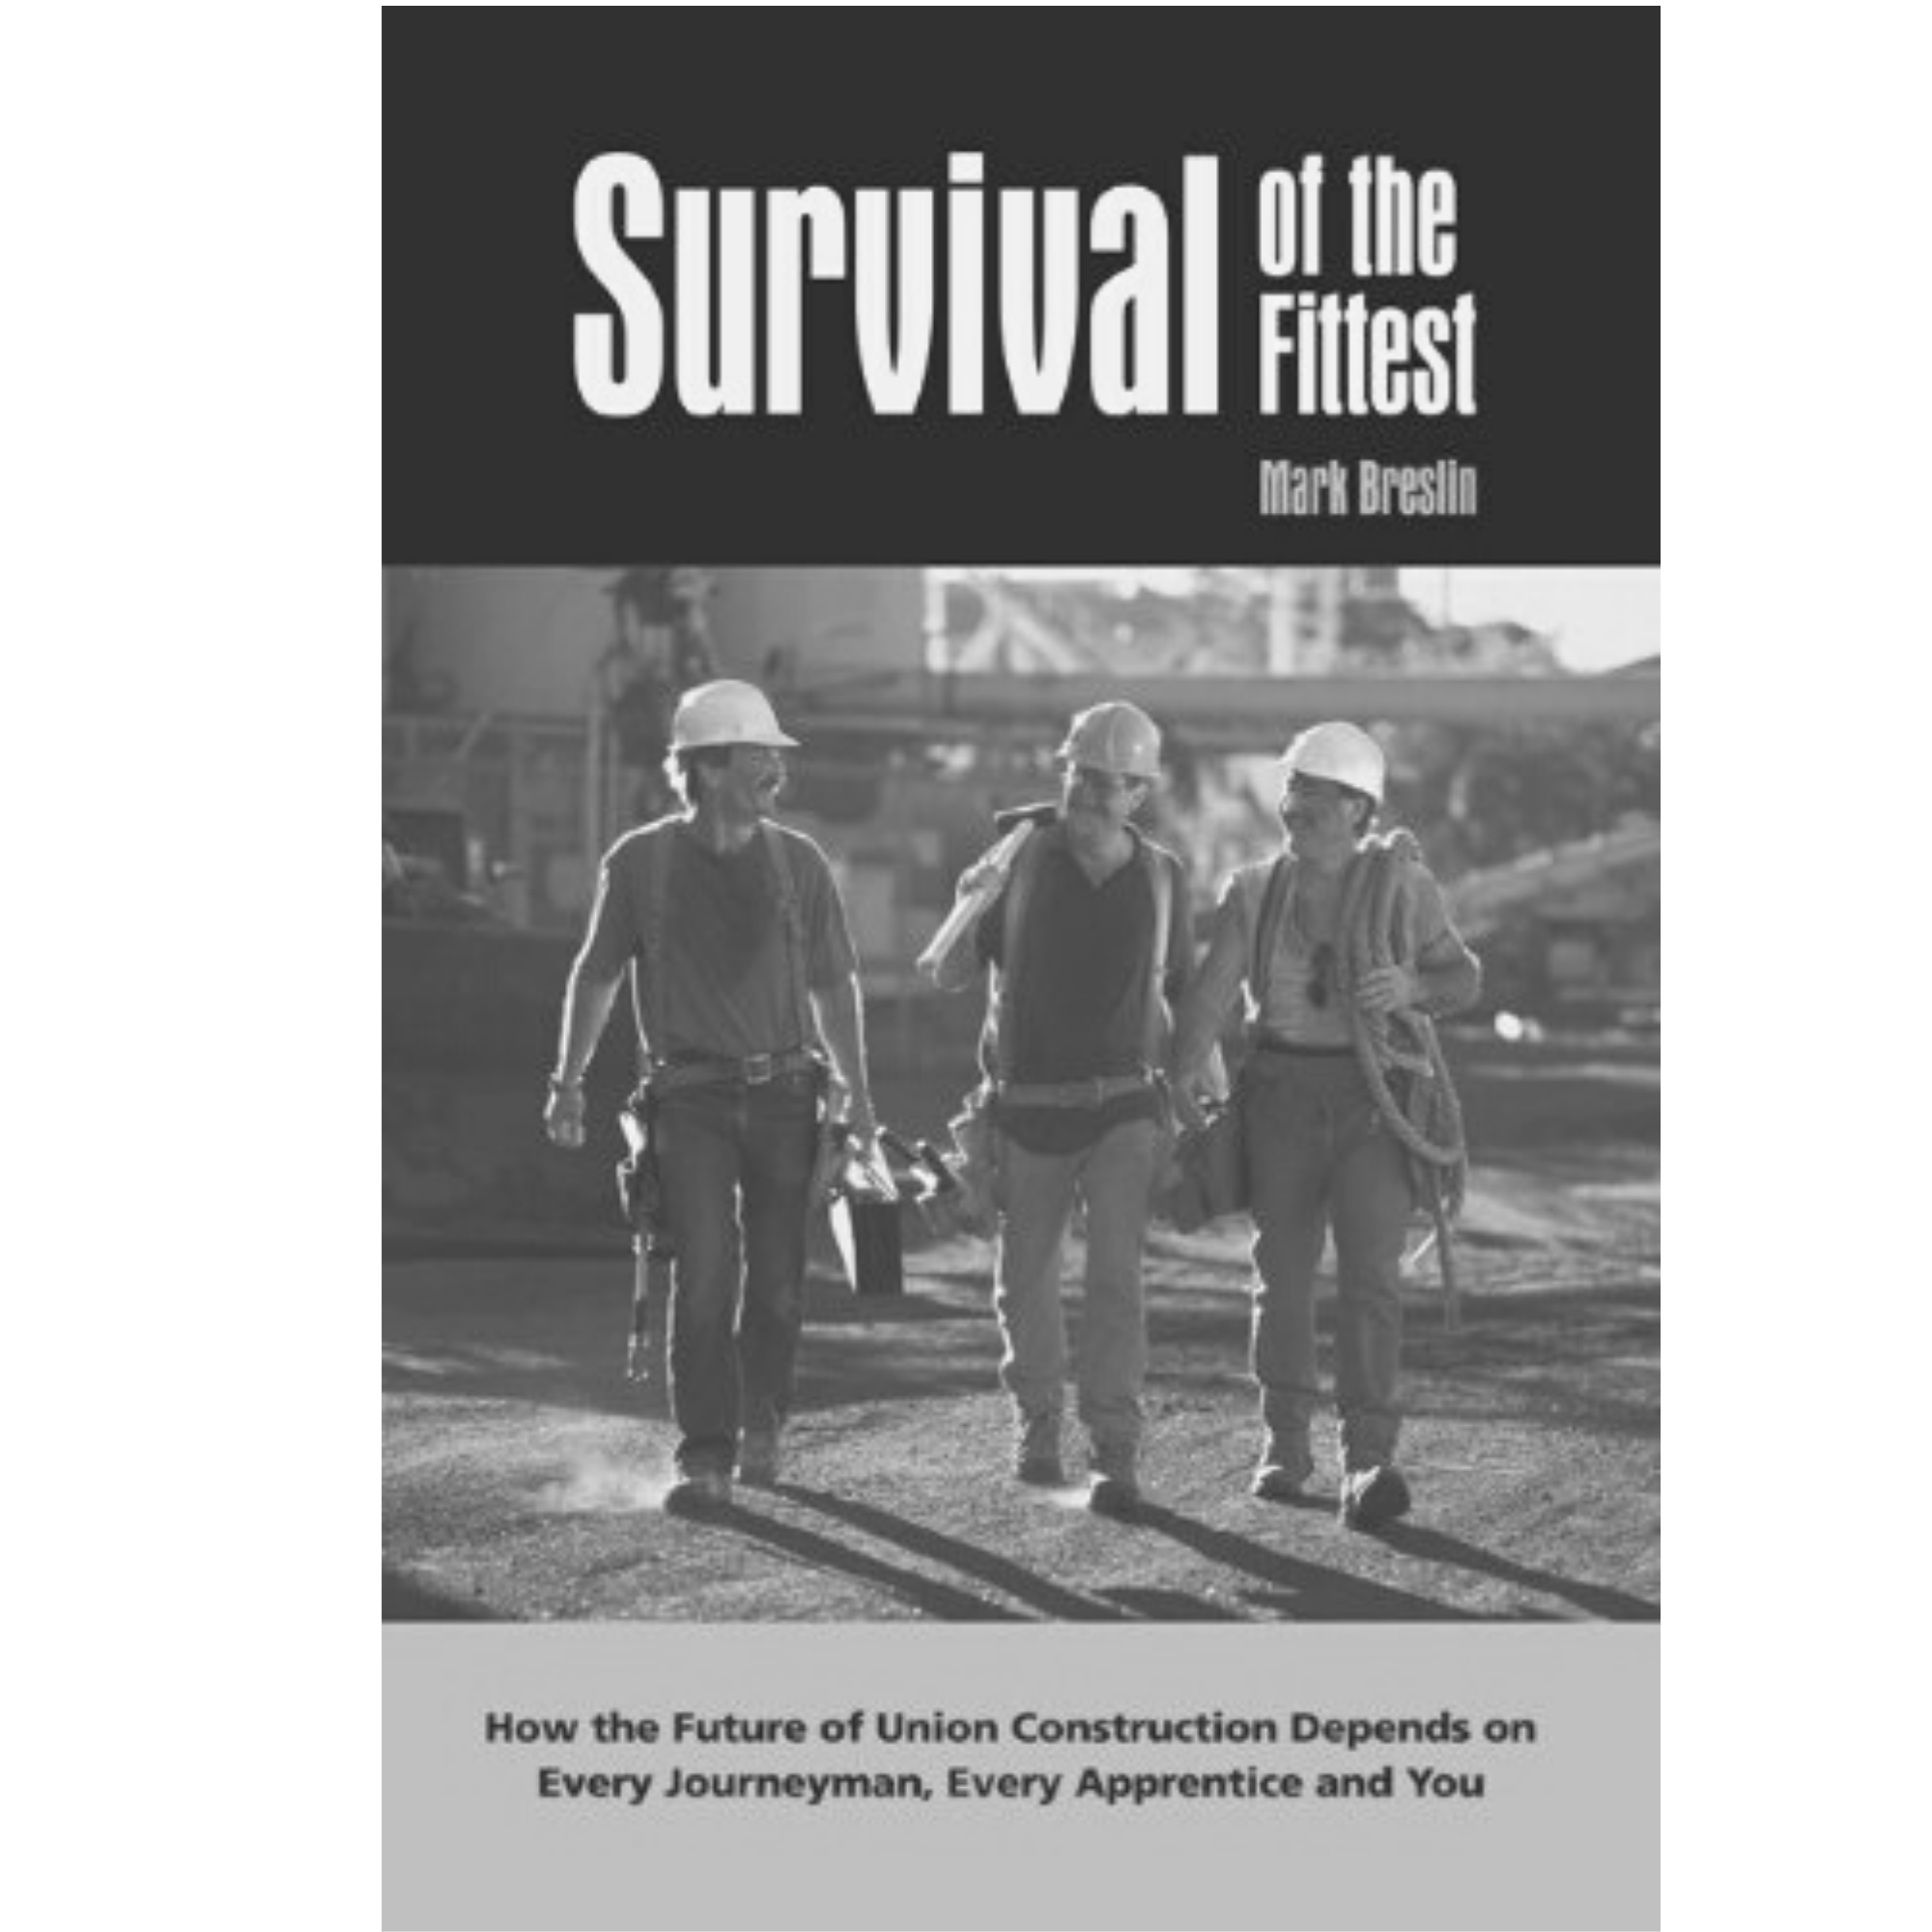 Survival of the Fittest by Mark Breslin